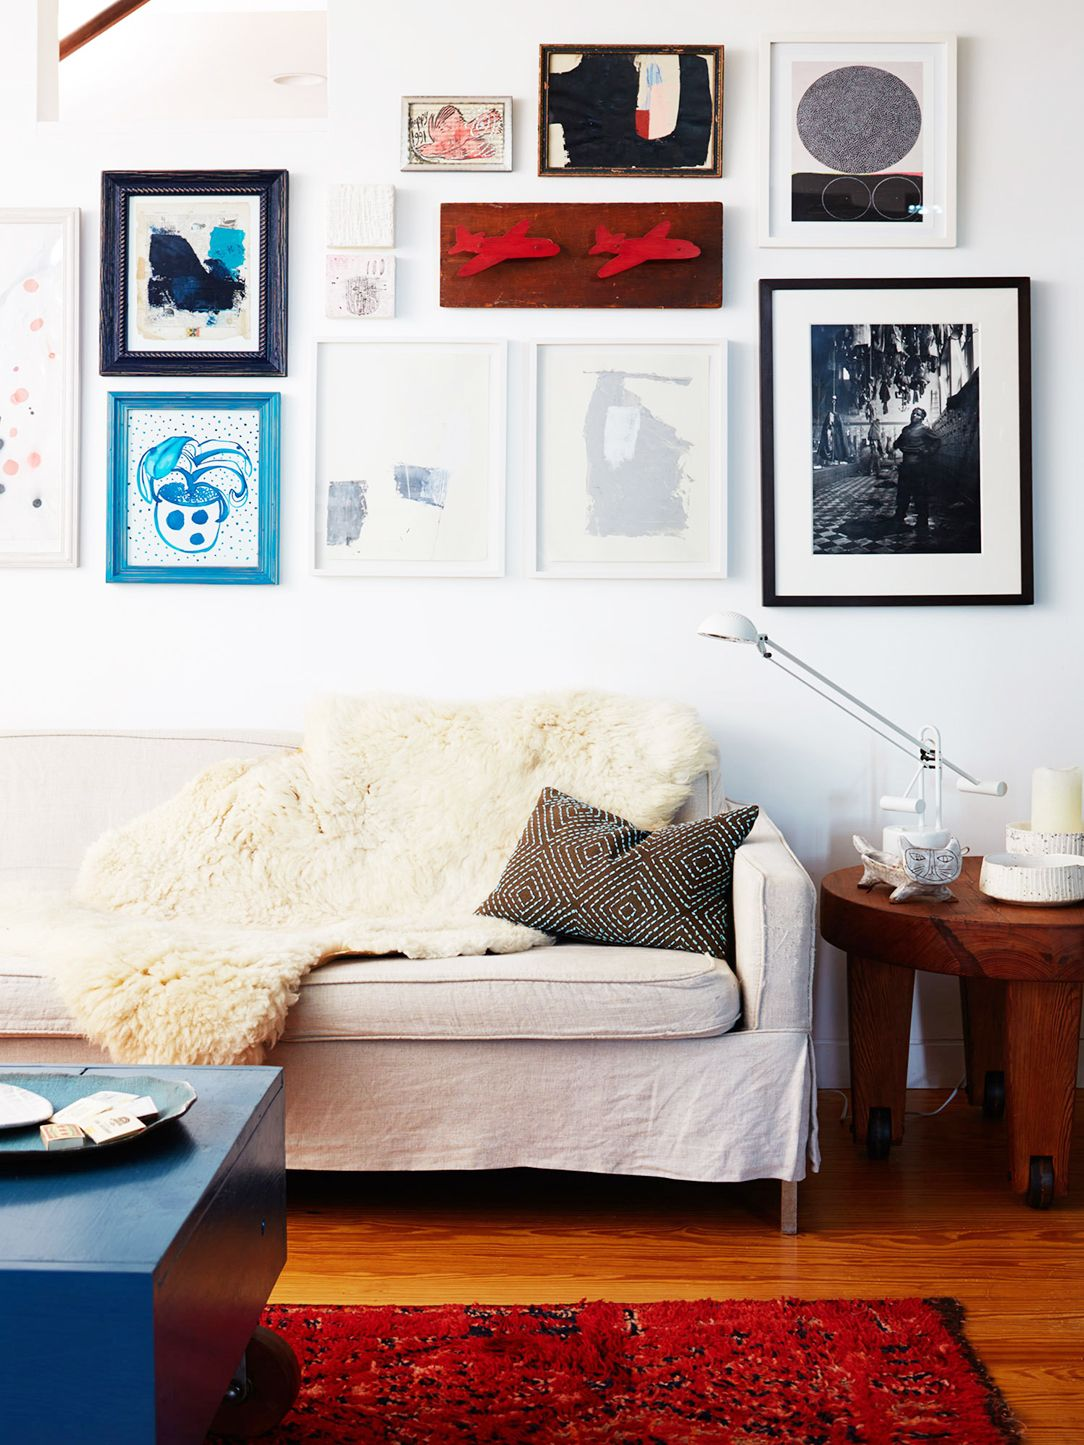 Invest in good frames for artwork and make the space look higher-end.